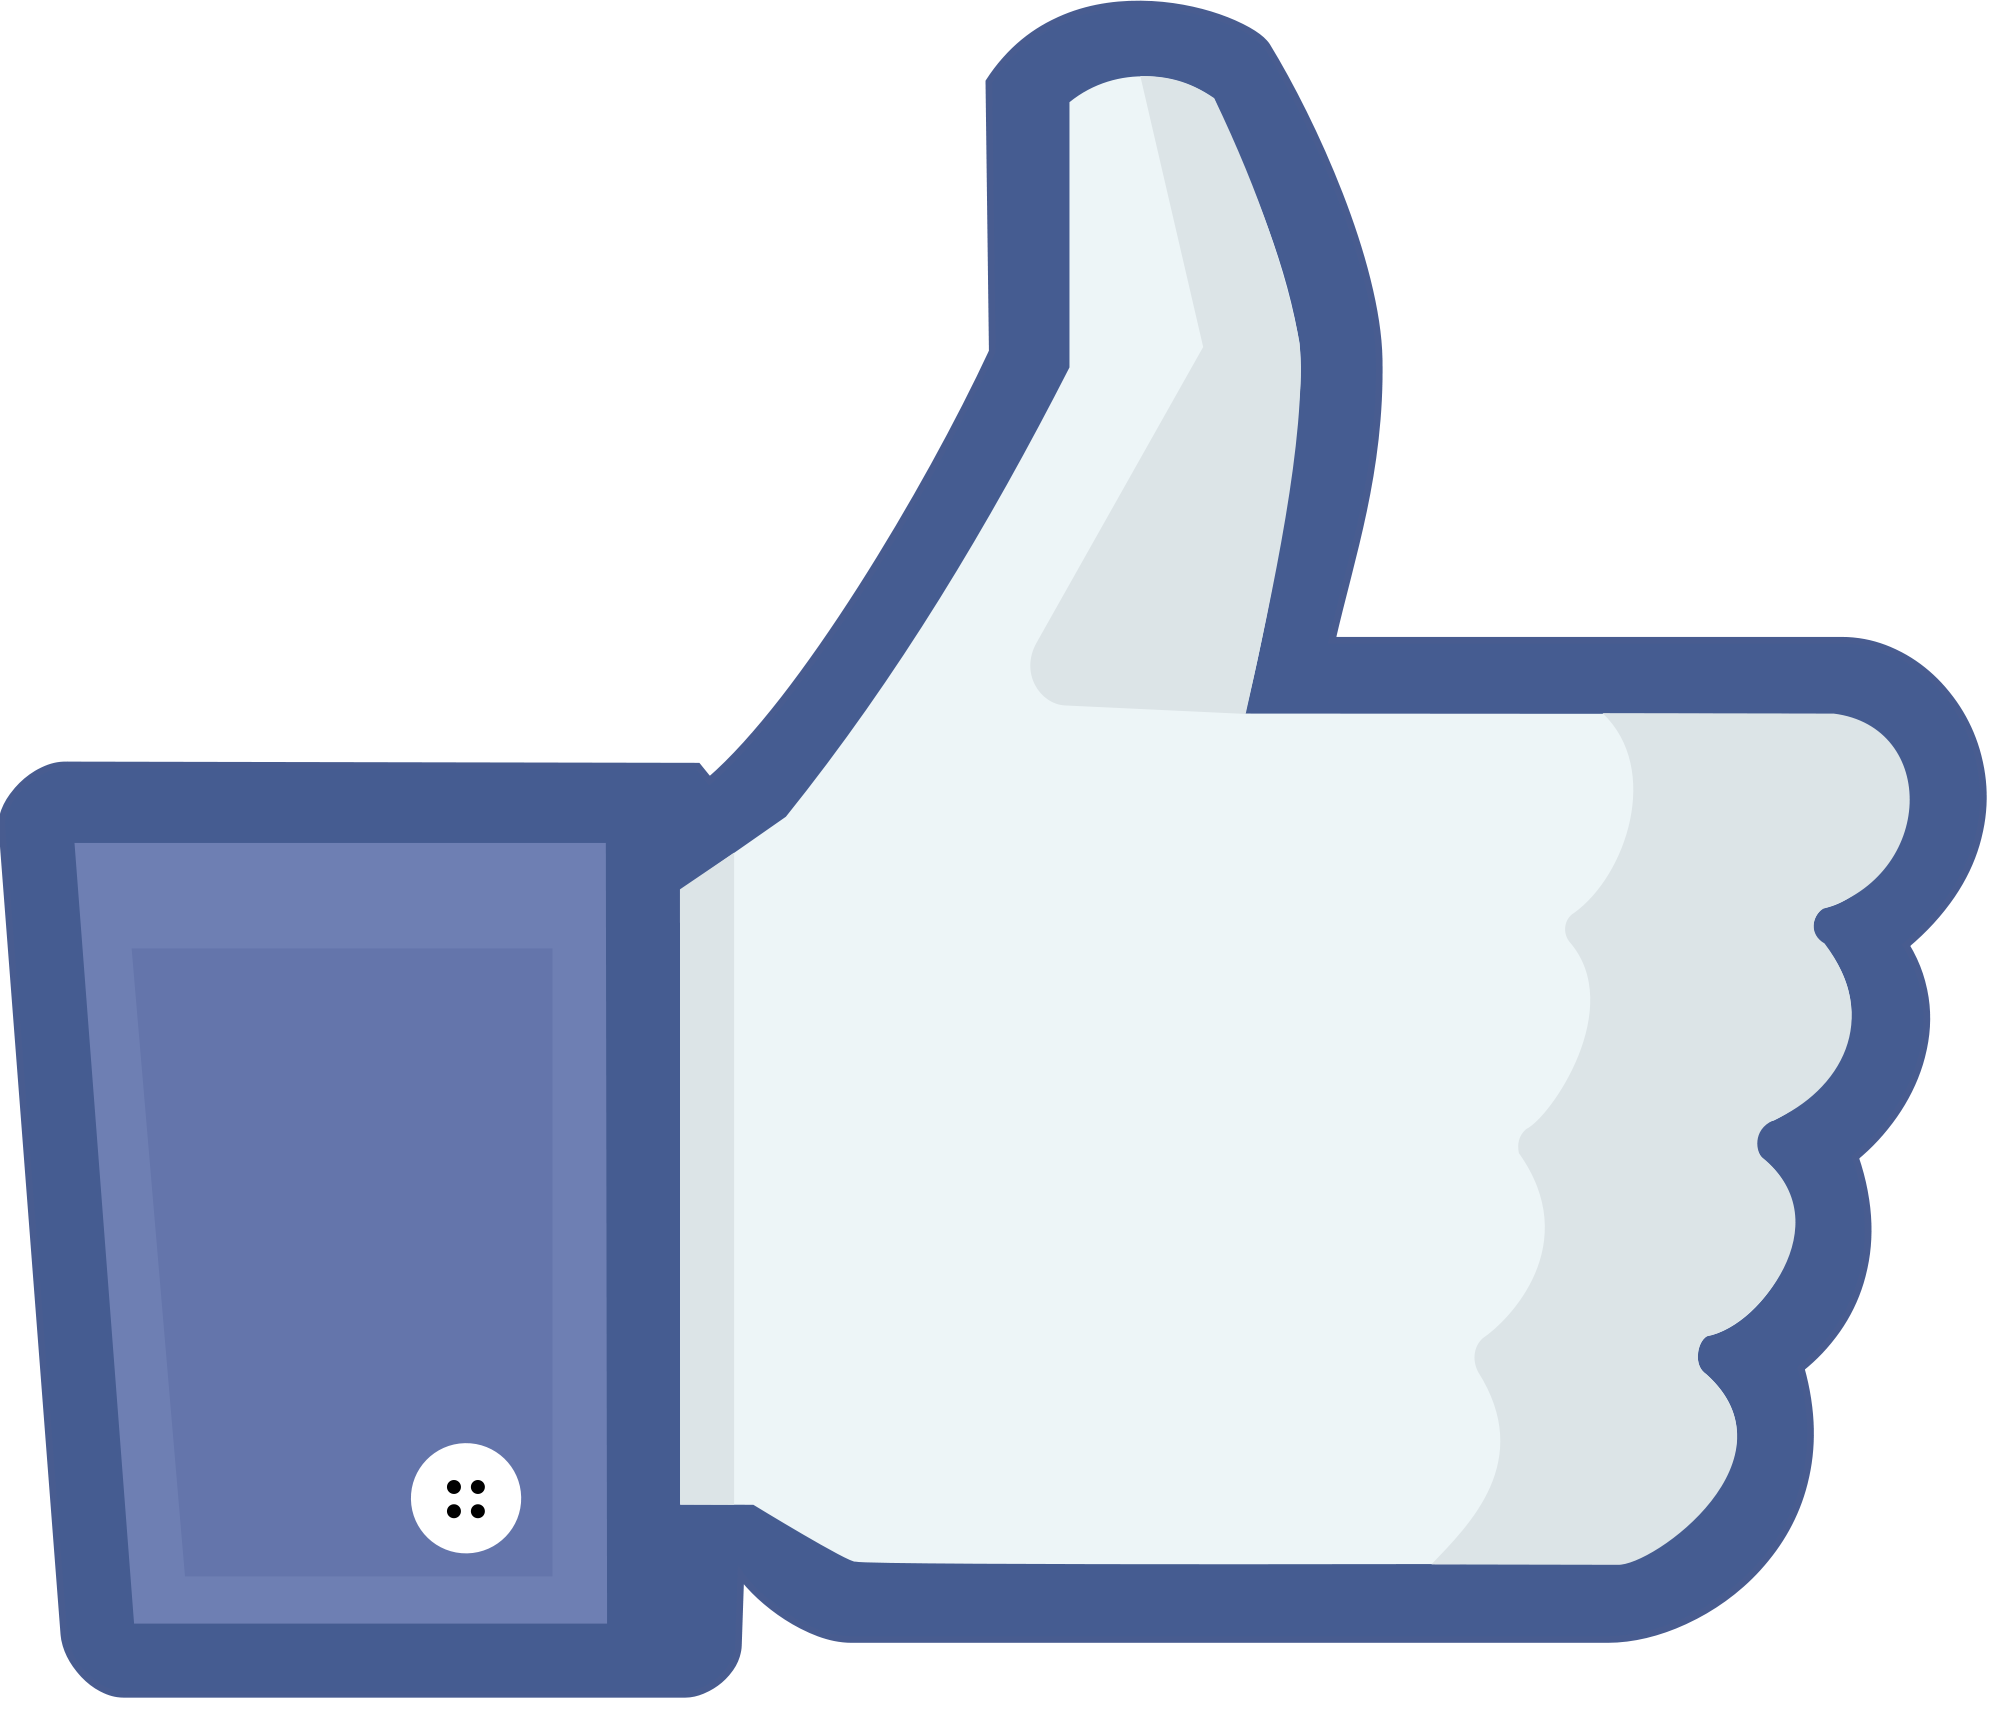 Facebook Enables Star Rating For Some Business Pages